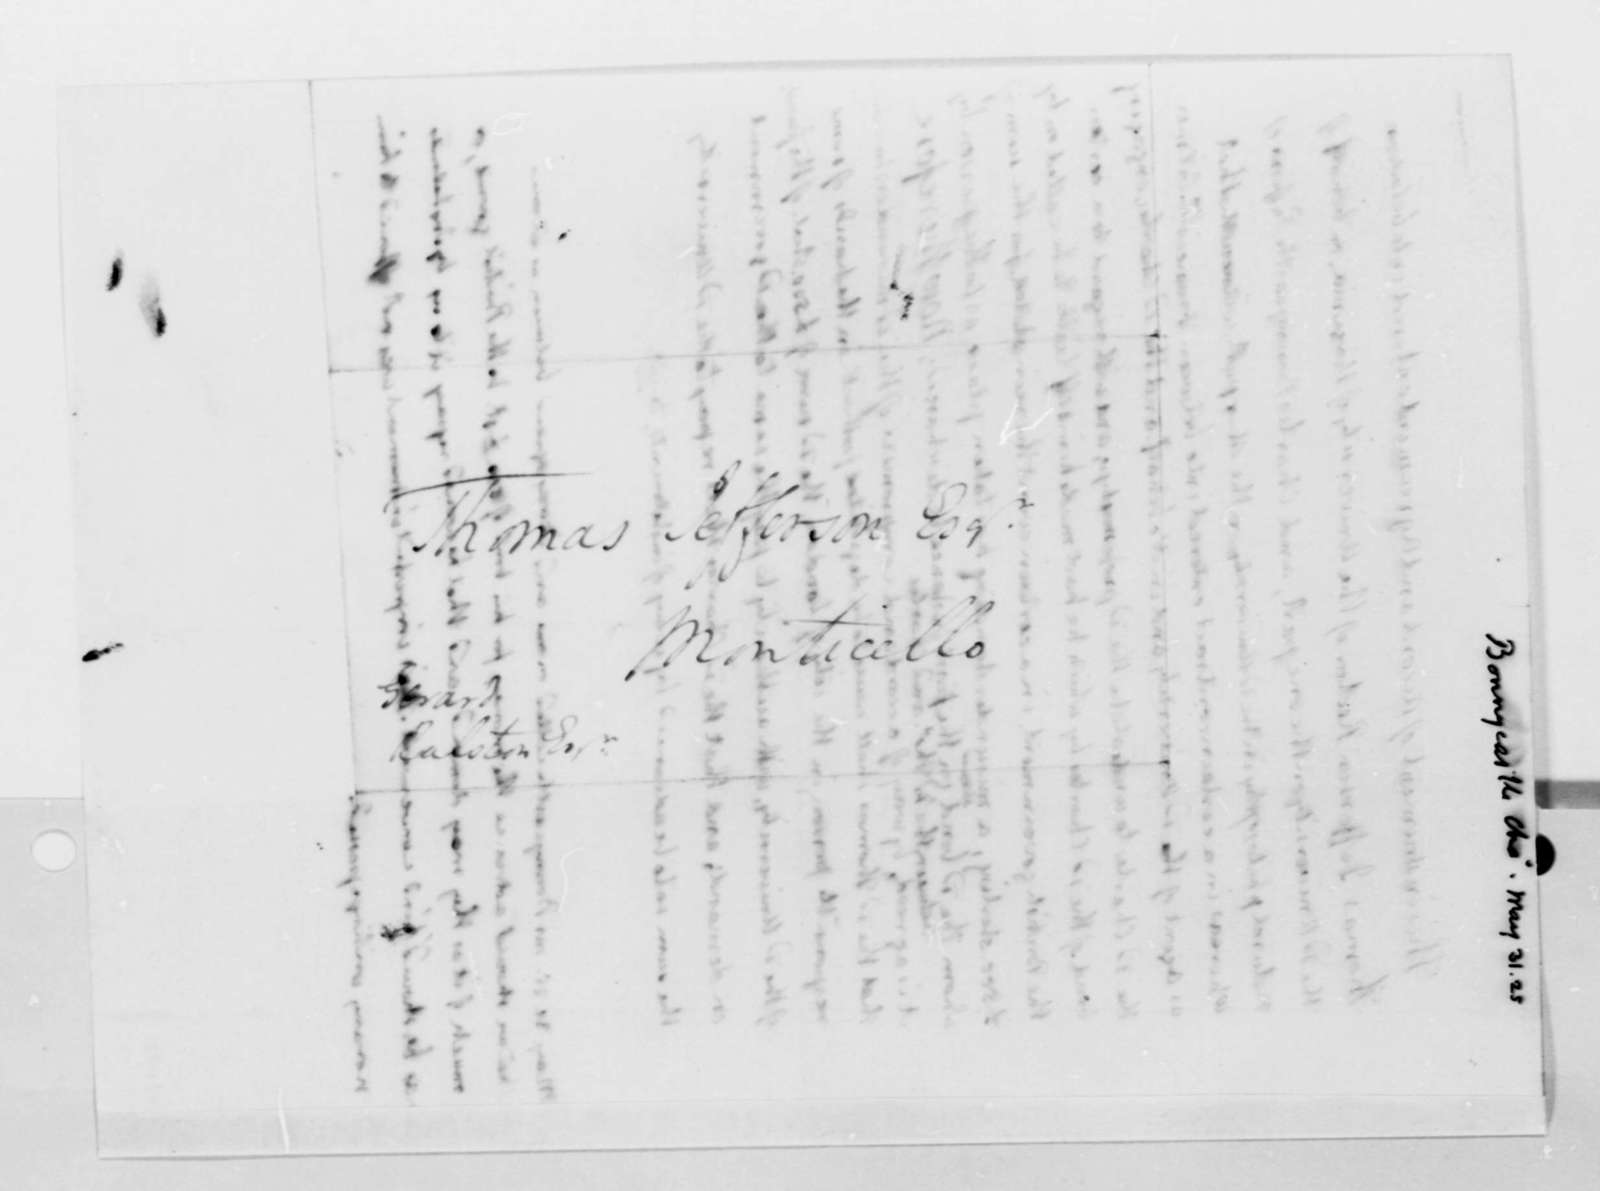 Charles Bonnycastle and Thomas Jefferson, May 31, 1825, Agreement